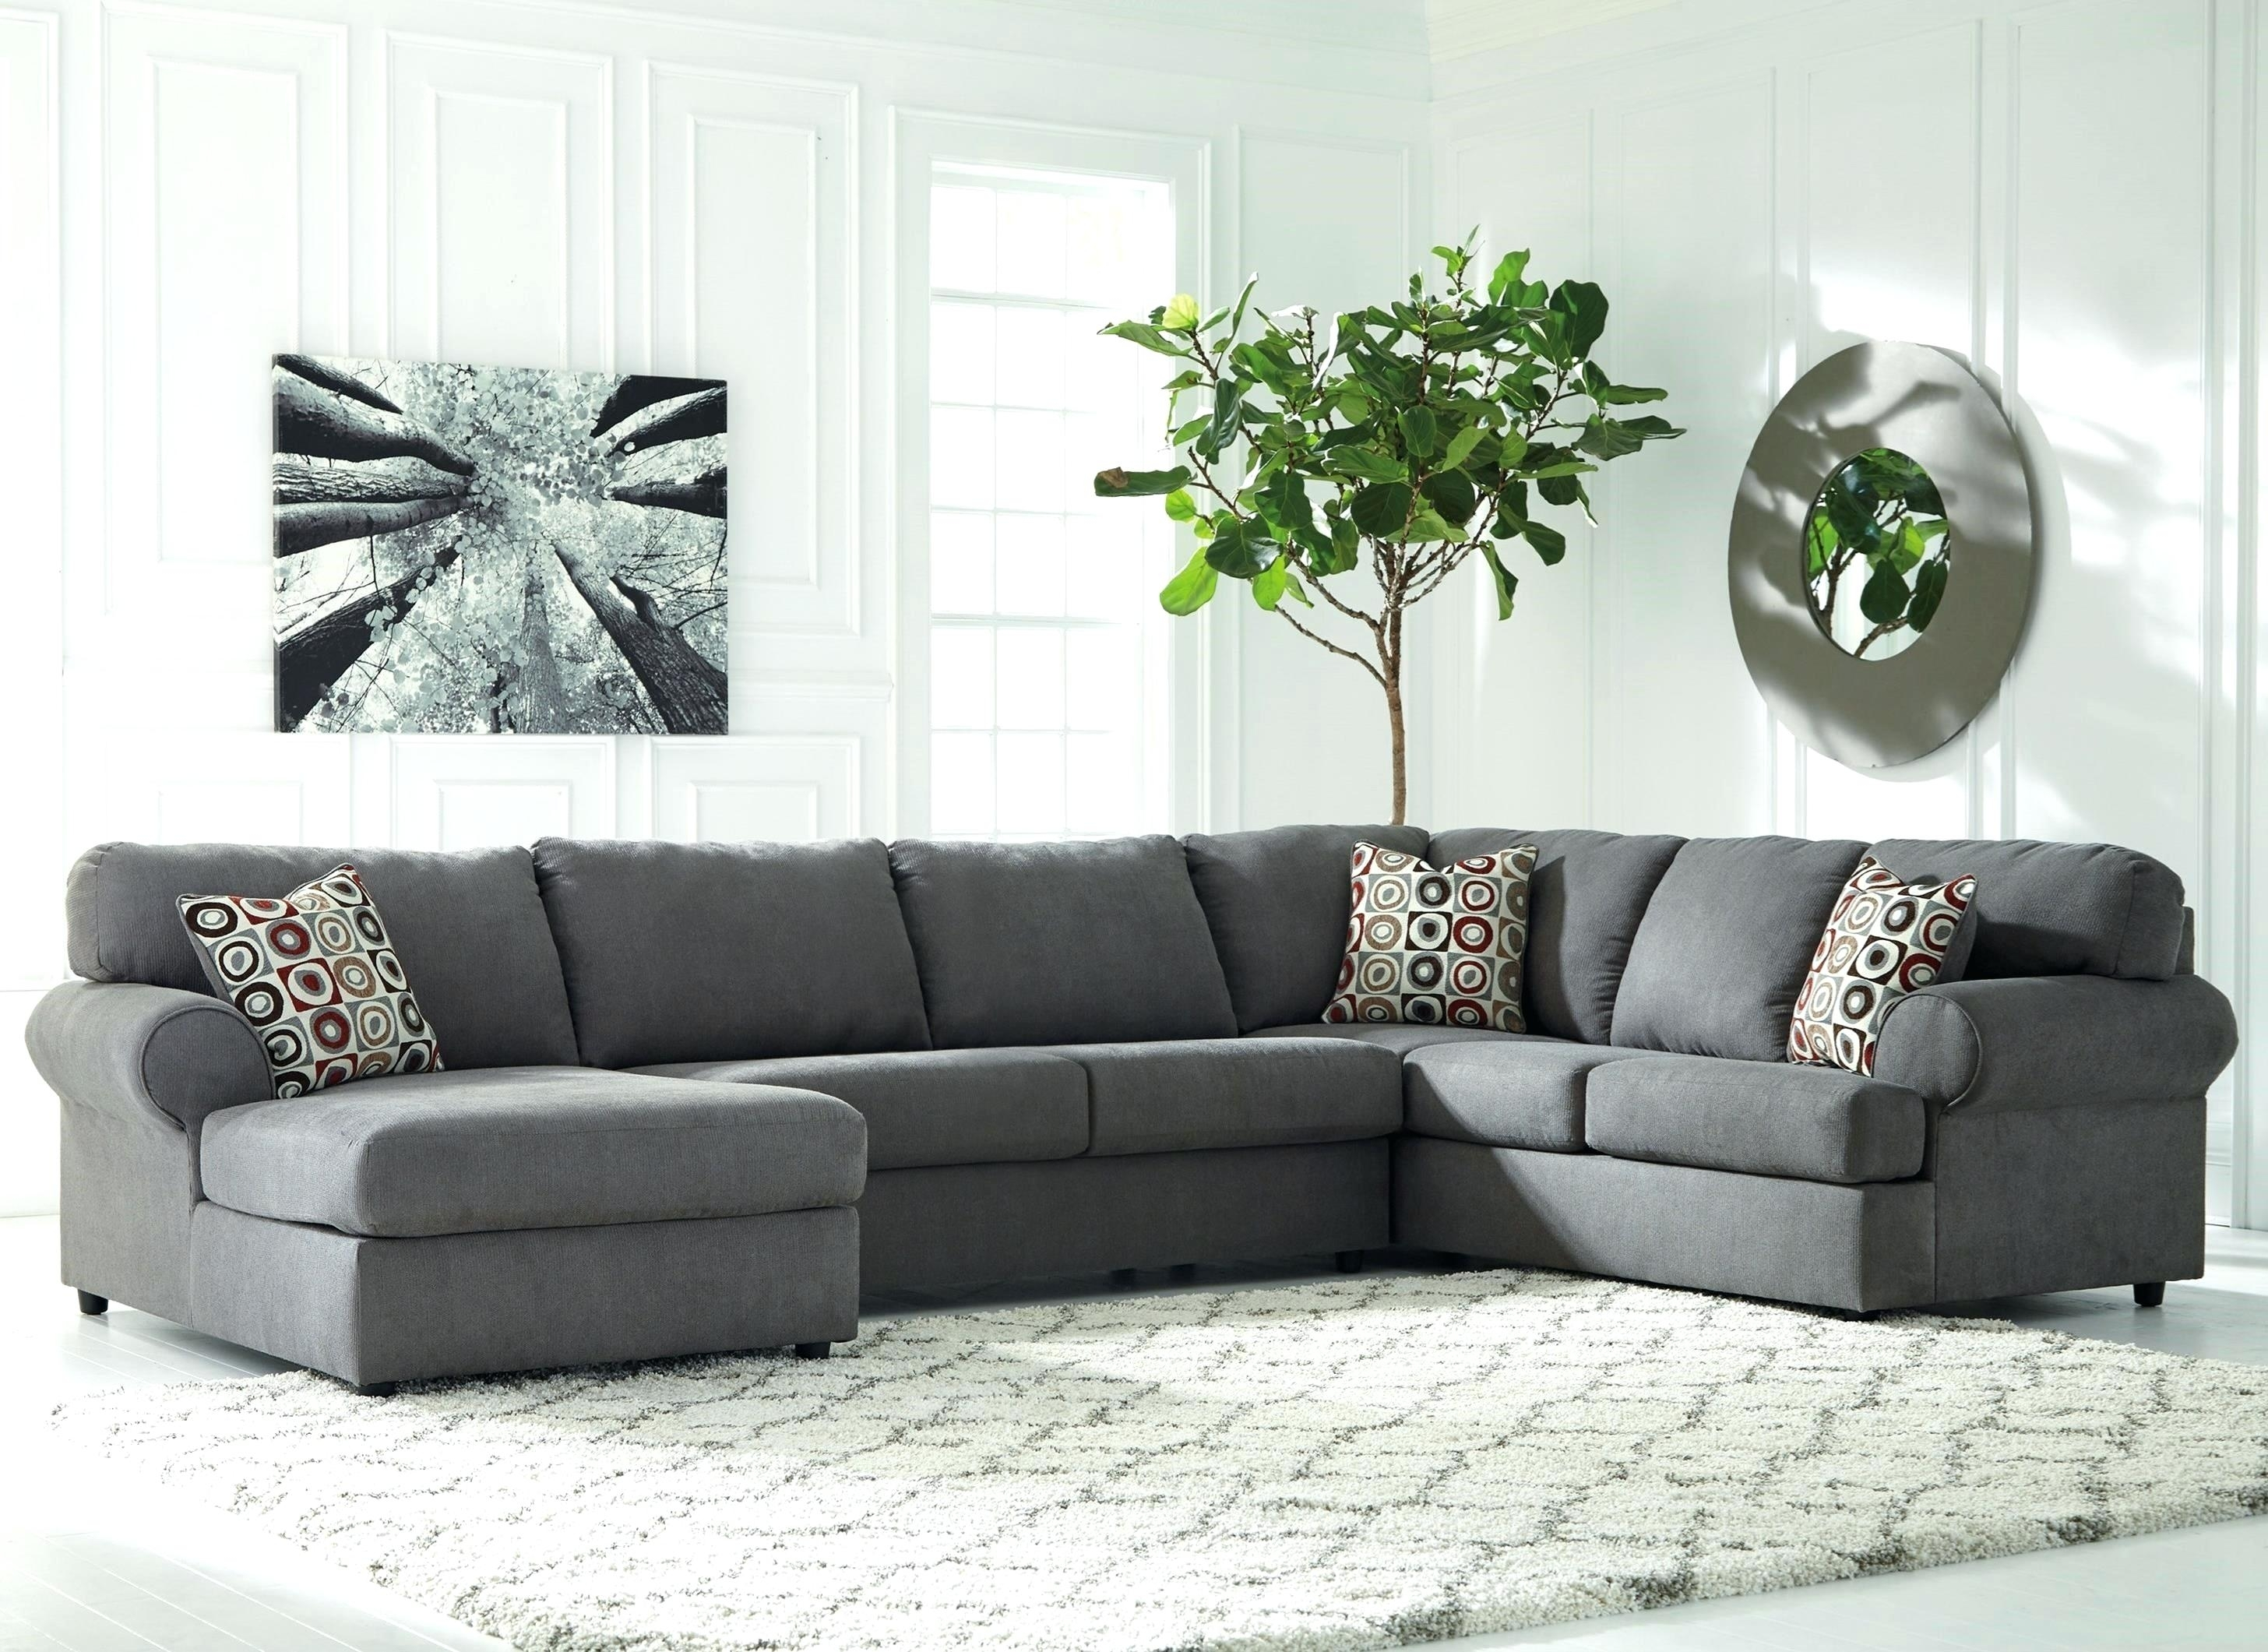 3 Piece Sectional Haven Blue Steel 3 Piece Sectional 3 Pc Reclining For Haven Blue Steel 3 Piece Sectionals (Photo 4 of 30)